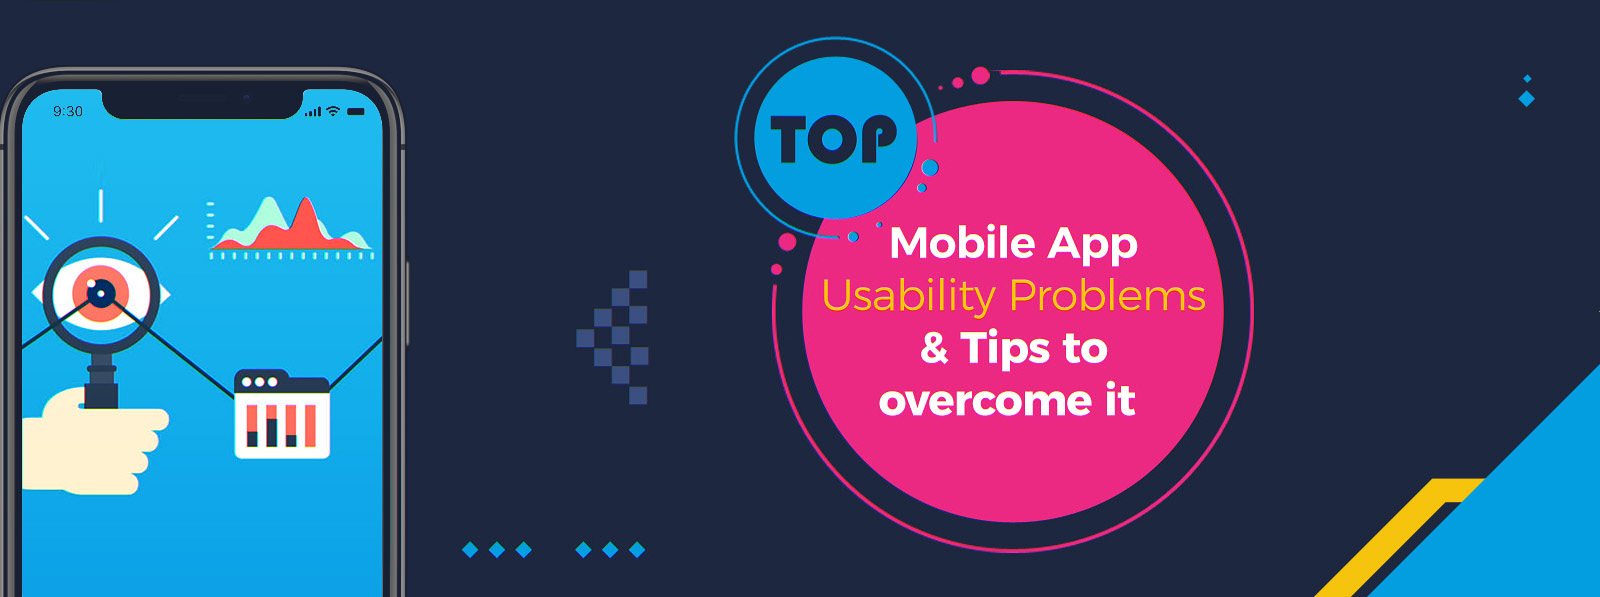 Mobile App Usability Problems & Tips to overcome it_sttl